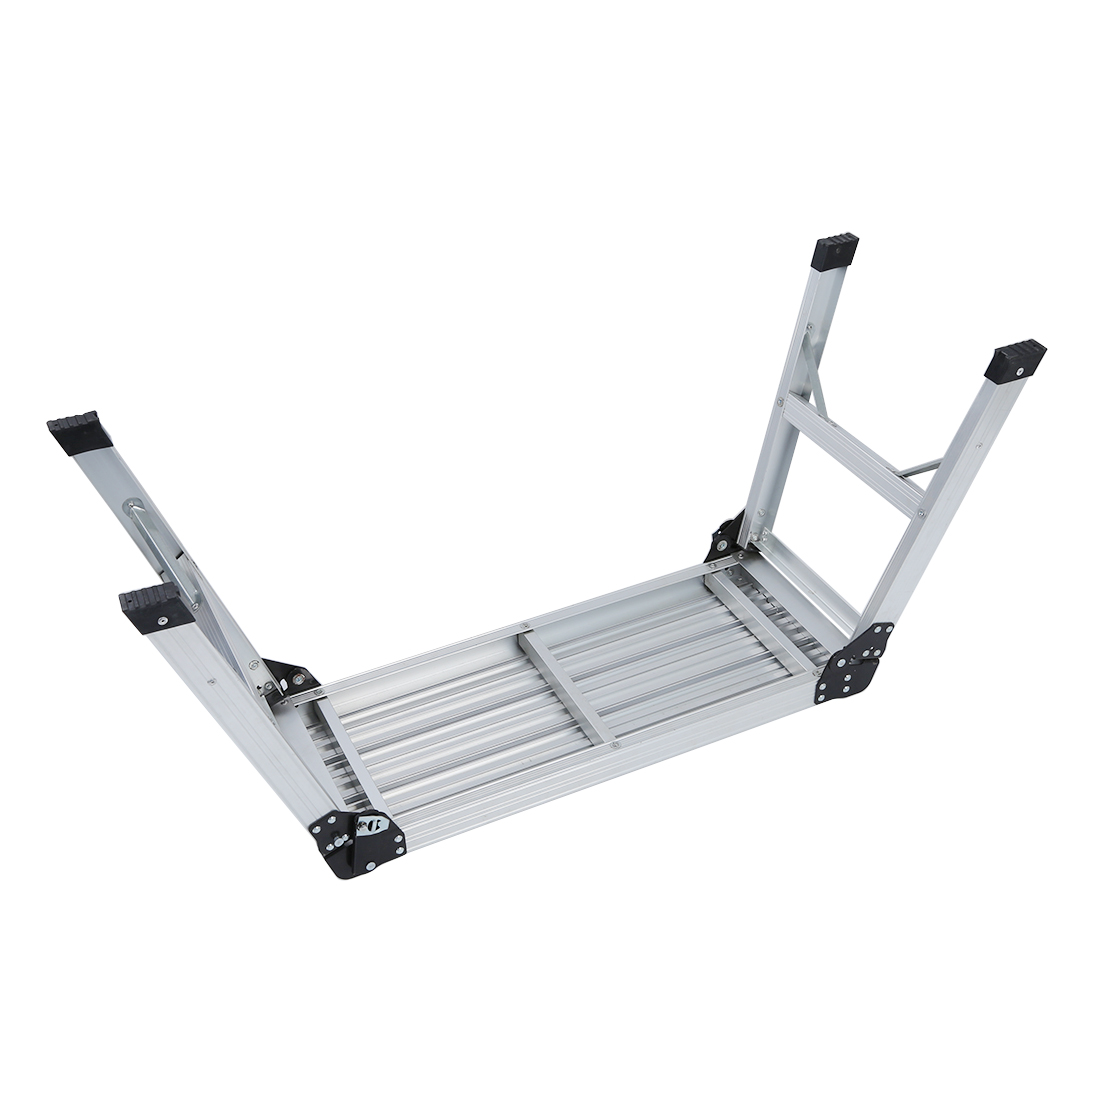 775MM Aluminium Platform Work Bench Folding Step Ladder EN131& CE 150Kg Hop UP775MM Aluminium Platform Work Bench Folding Step Ladder EN131& CE 150Kg Hop UP